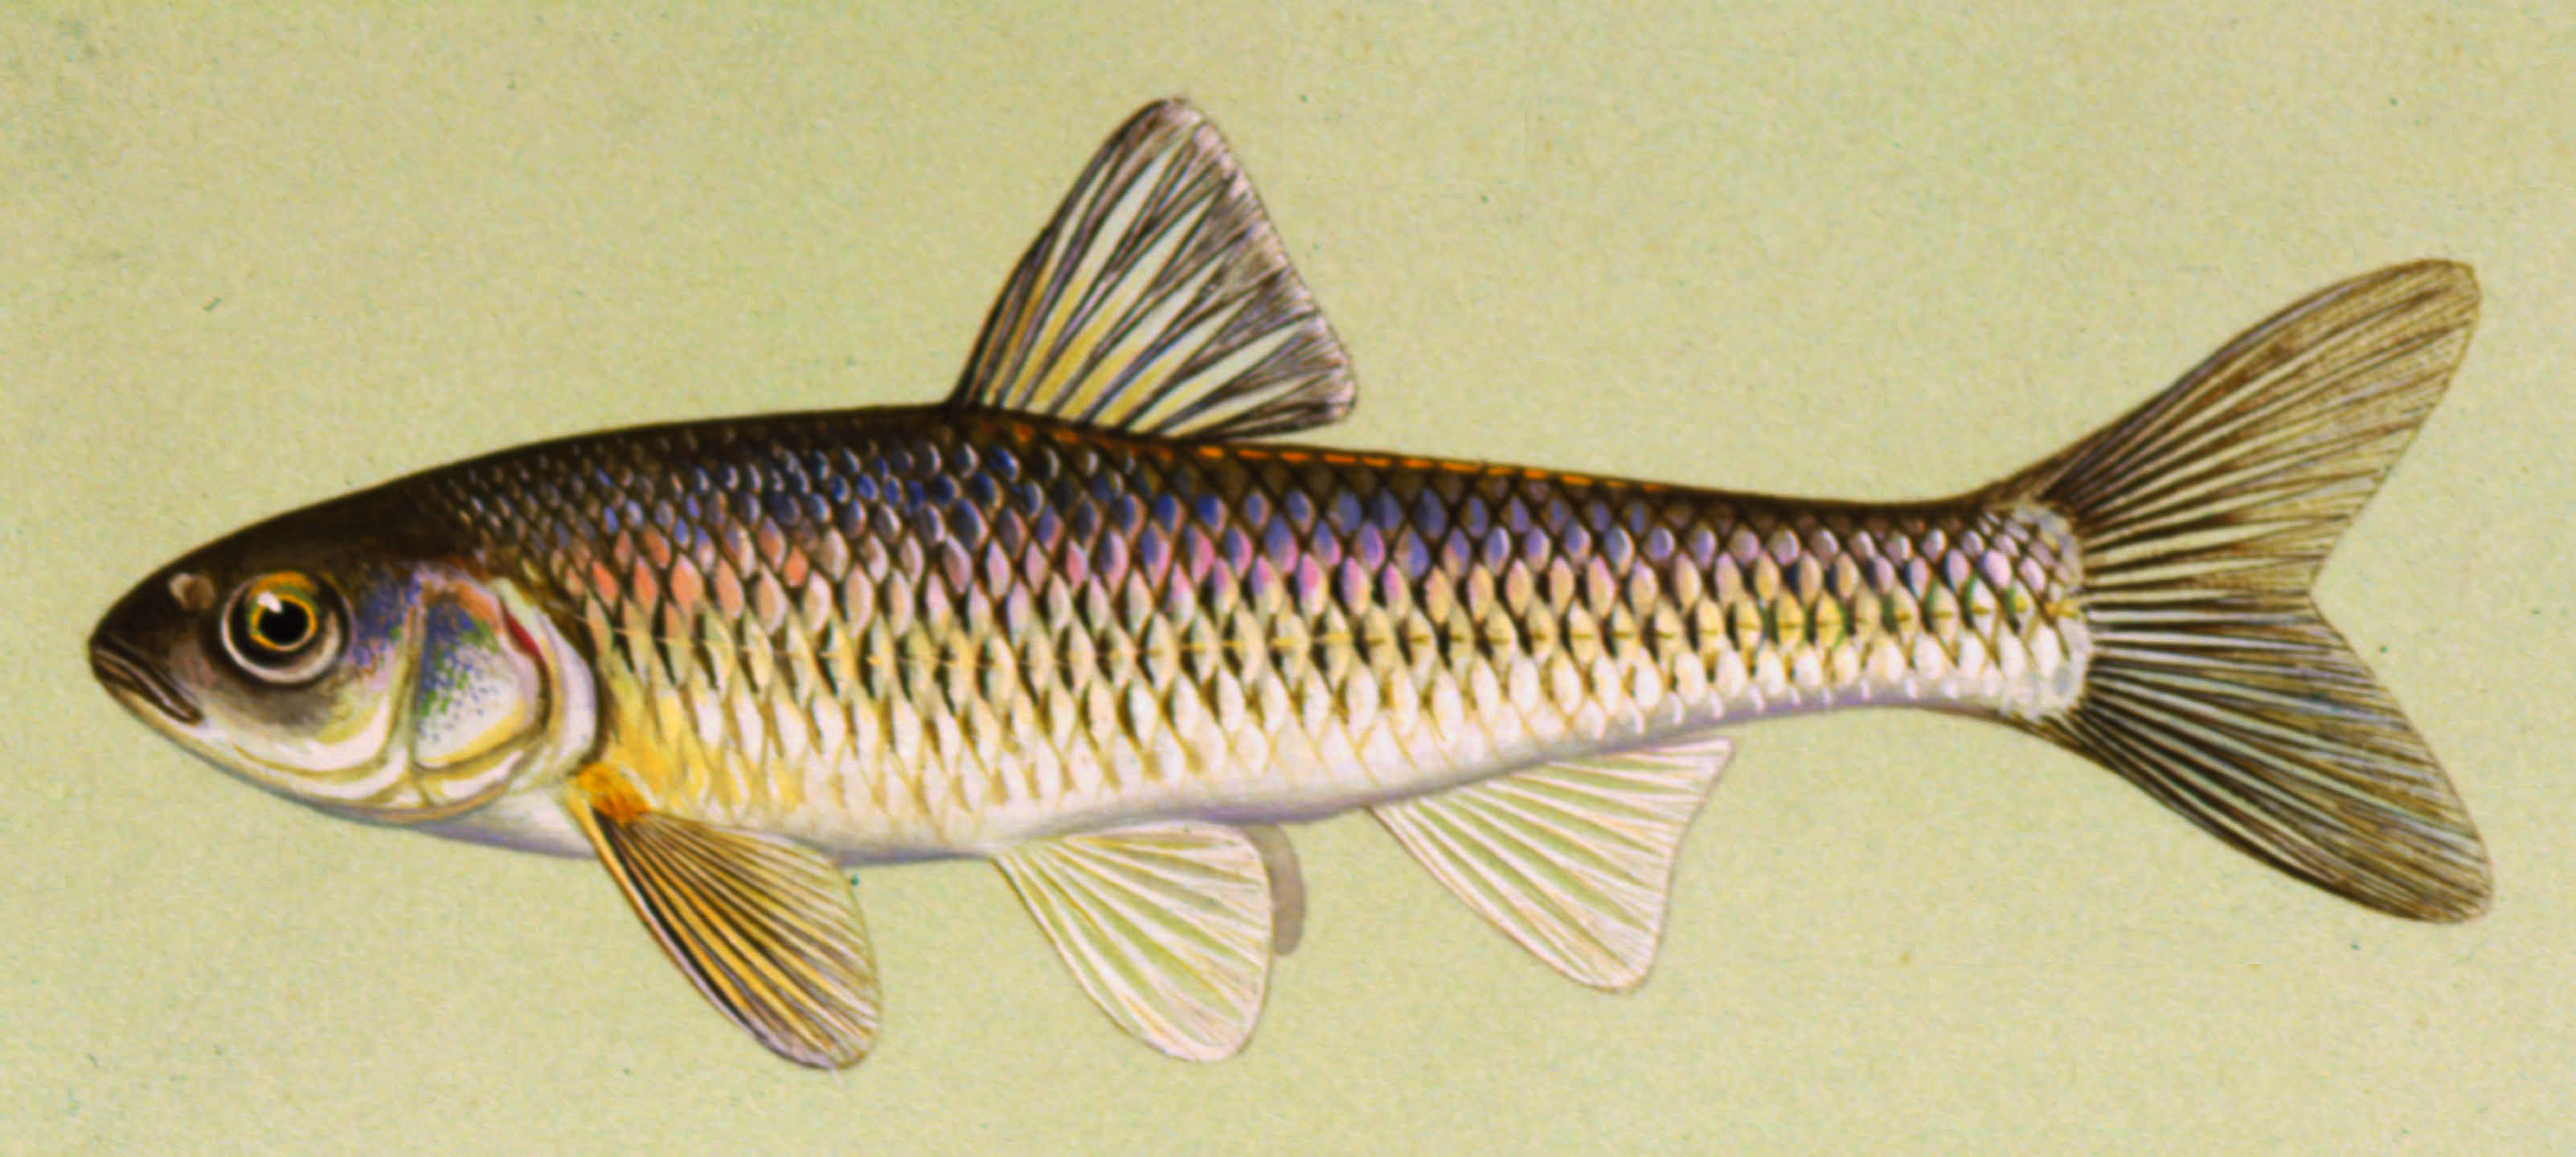 Common Shiner, illustration by Maynard Reece, from Iowa Fish and Fishing.